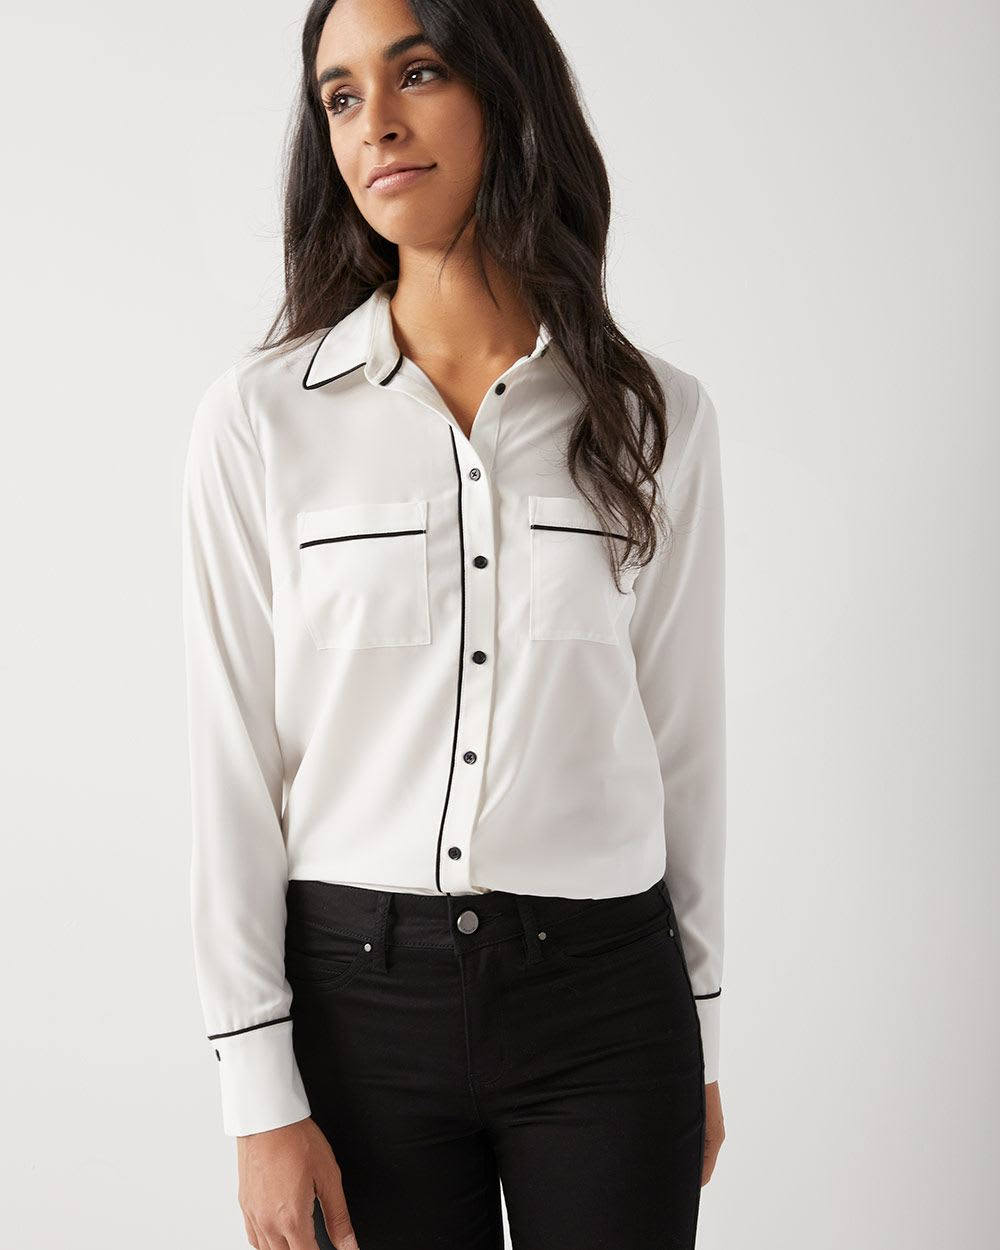 Long sleeve stretch button-down blouse with piping